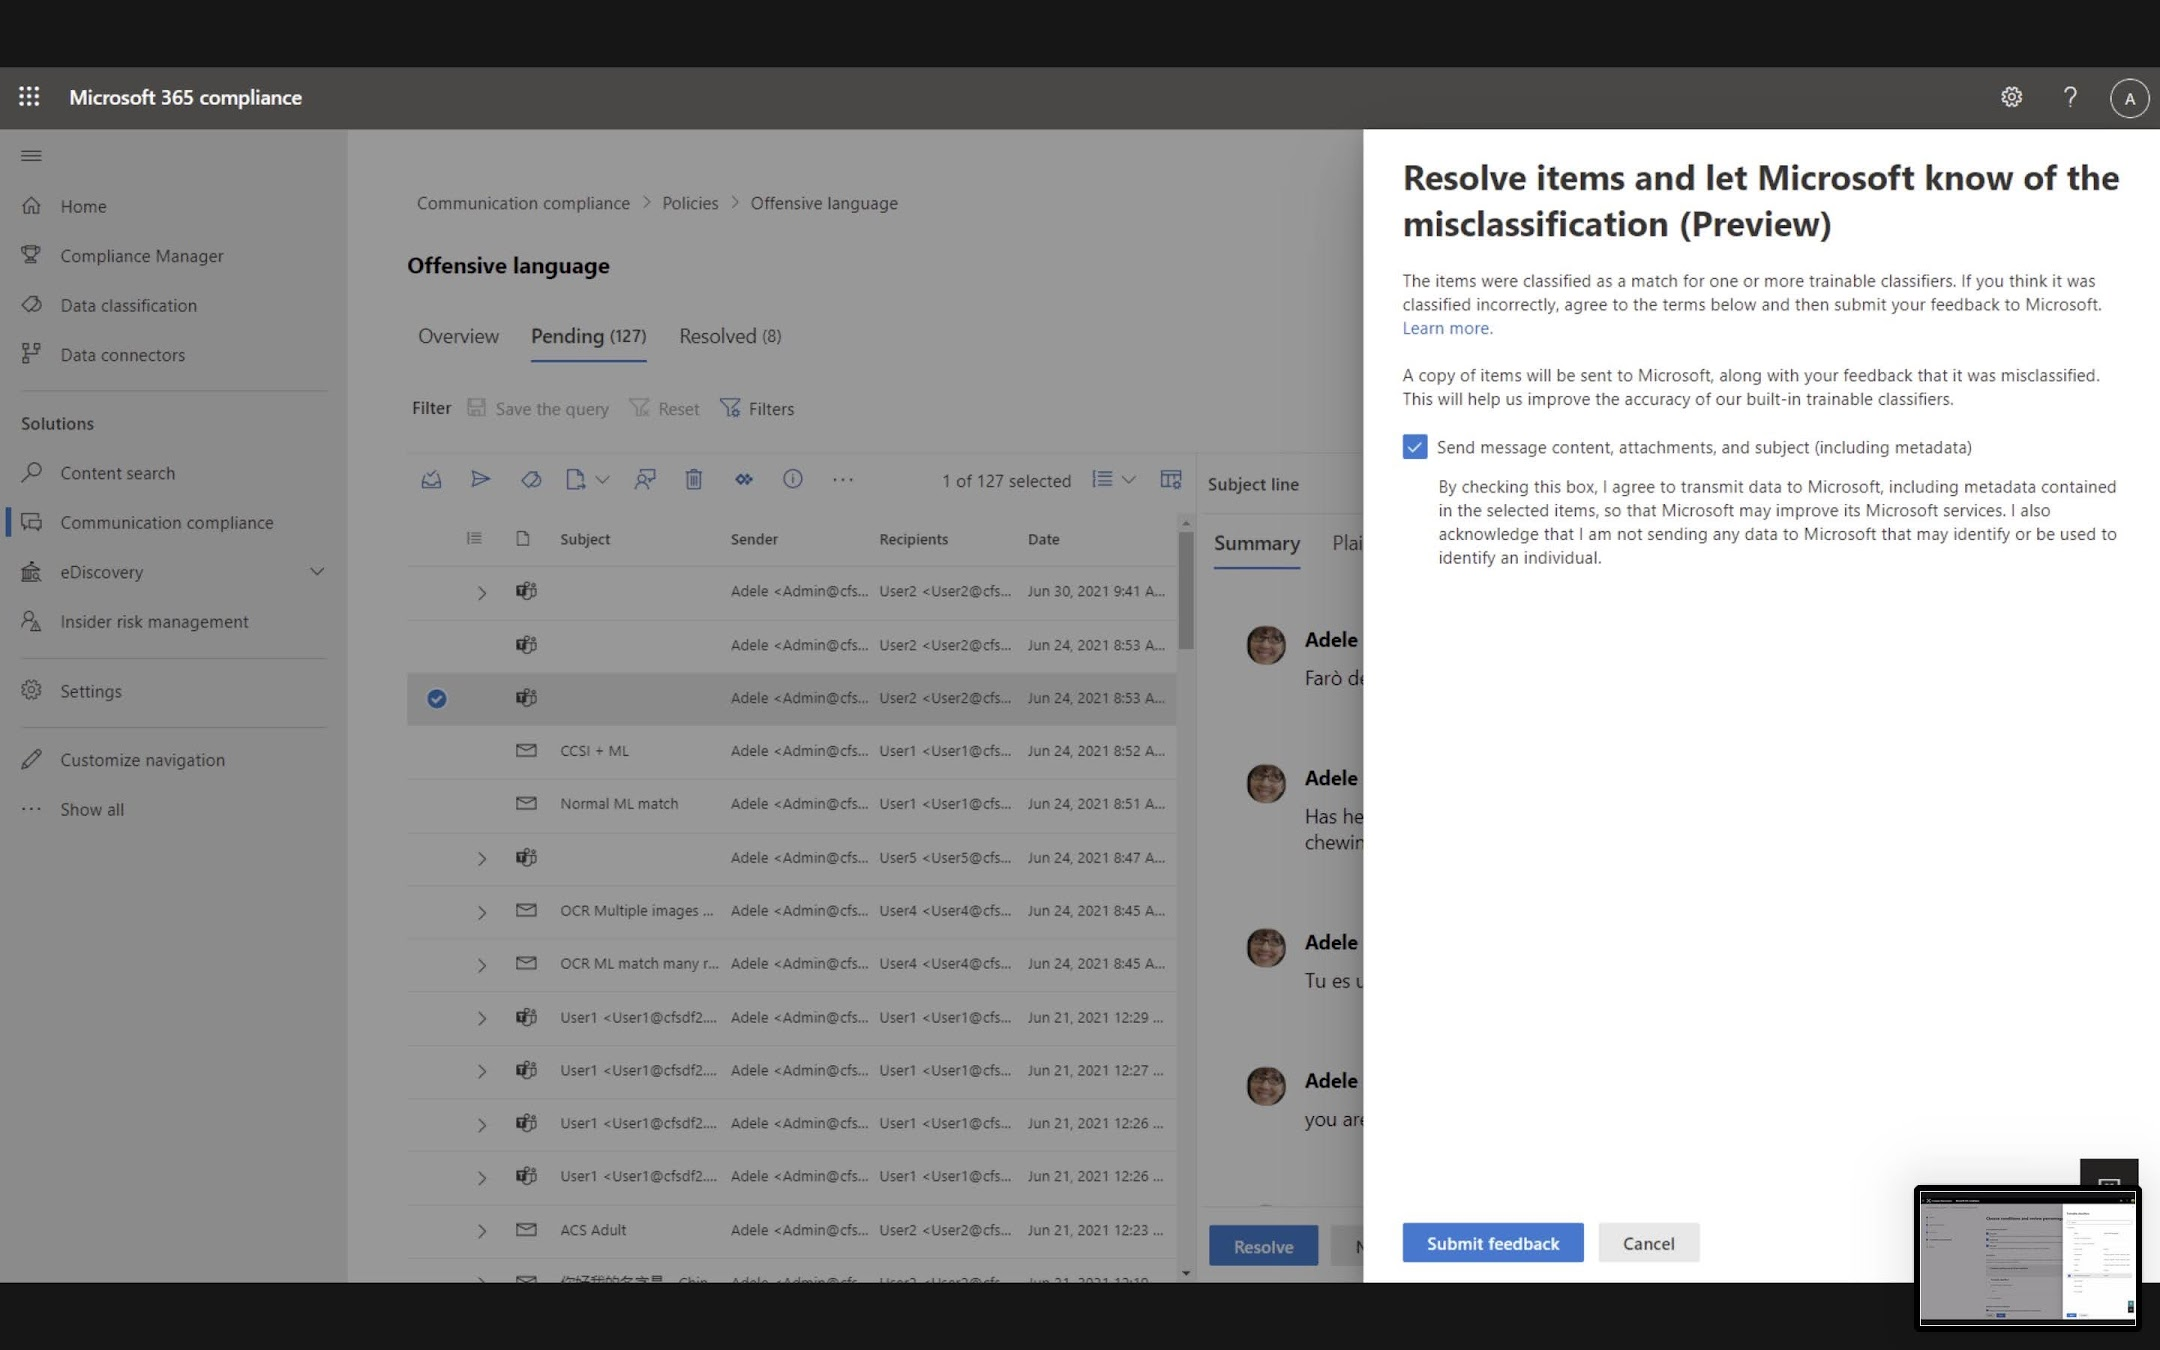 Cross tenant feedback enables you to provide feedback on messages that were misclassified (such as false positives) by a Communication Compliance policy leveraging any of the built-in classifiers (Threat, Harassment, Profanities, Discrimination).